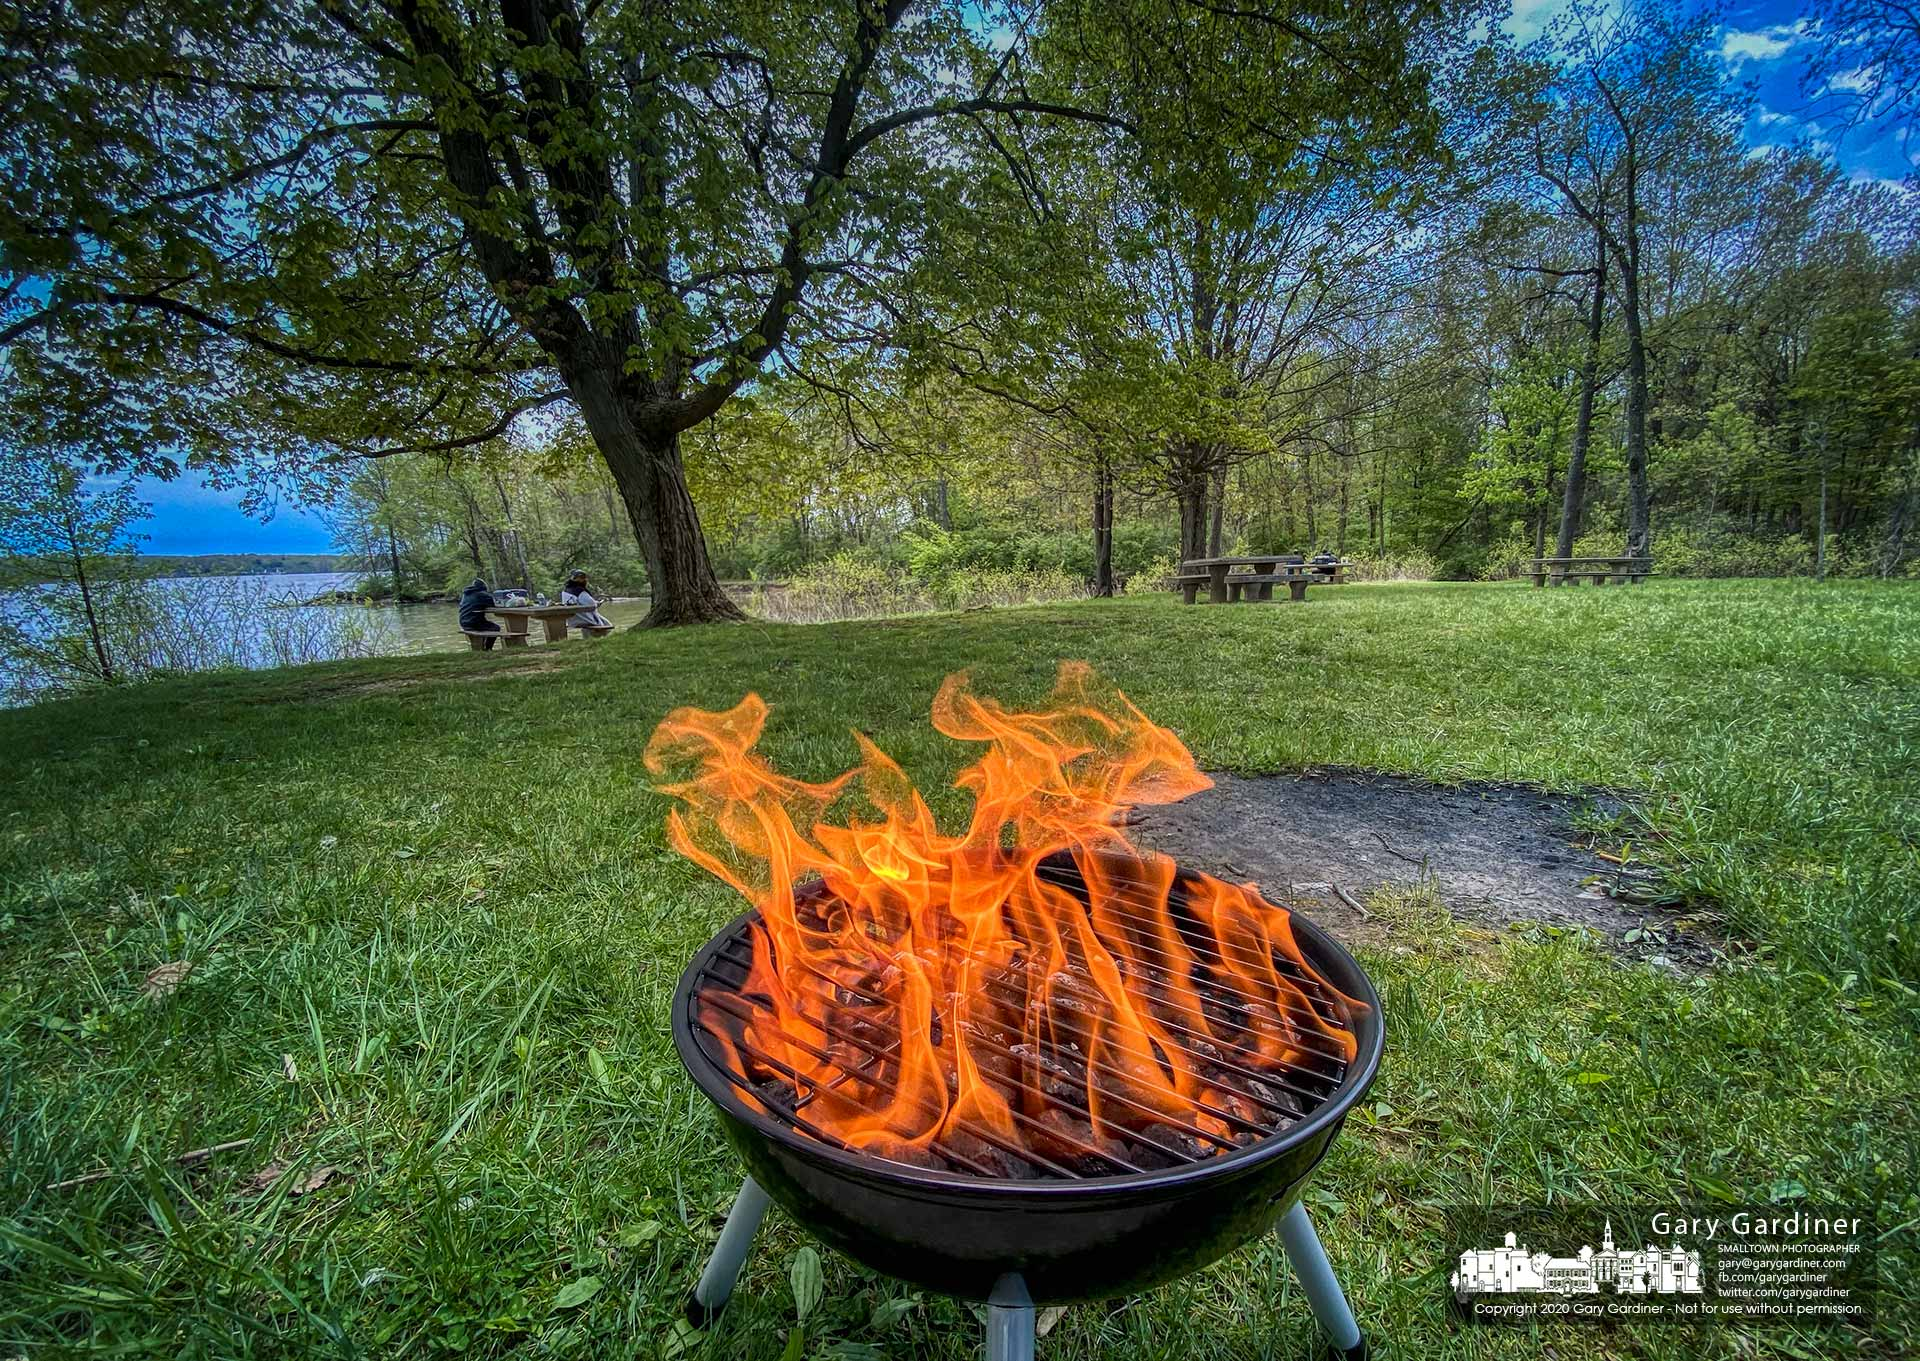 A blazing fire in a charcoal grill signals the beginning of a cookout for a family in the pavilion at Red Bank on the shore of Hoover Reservoir. My Final Photo for May 10, 2020.